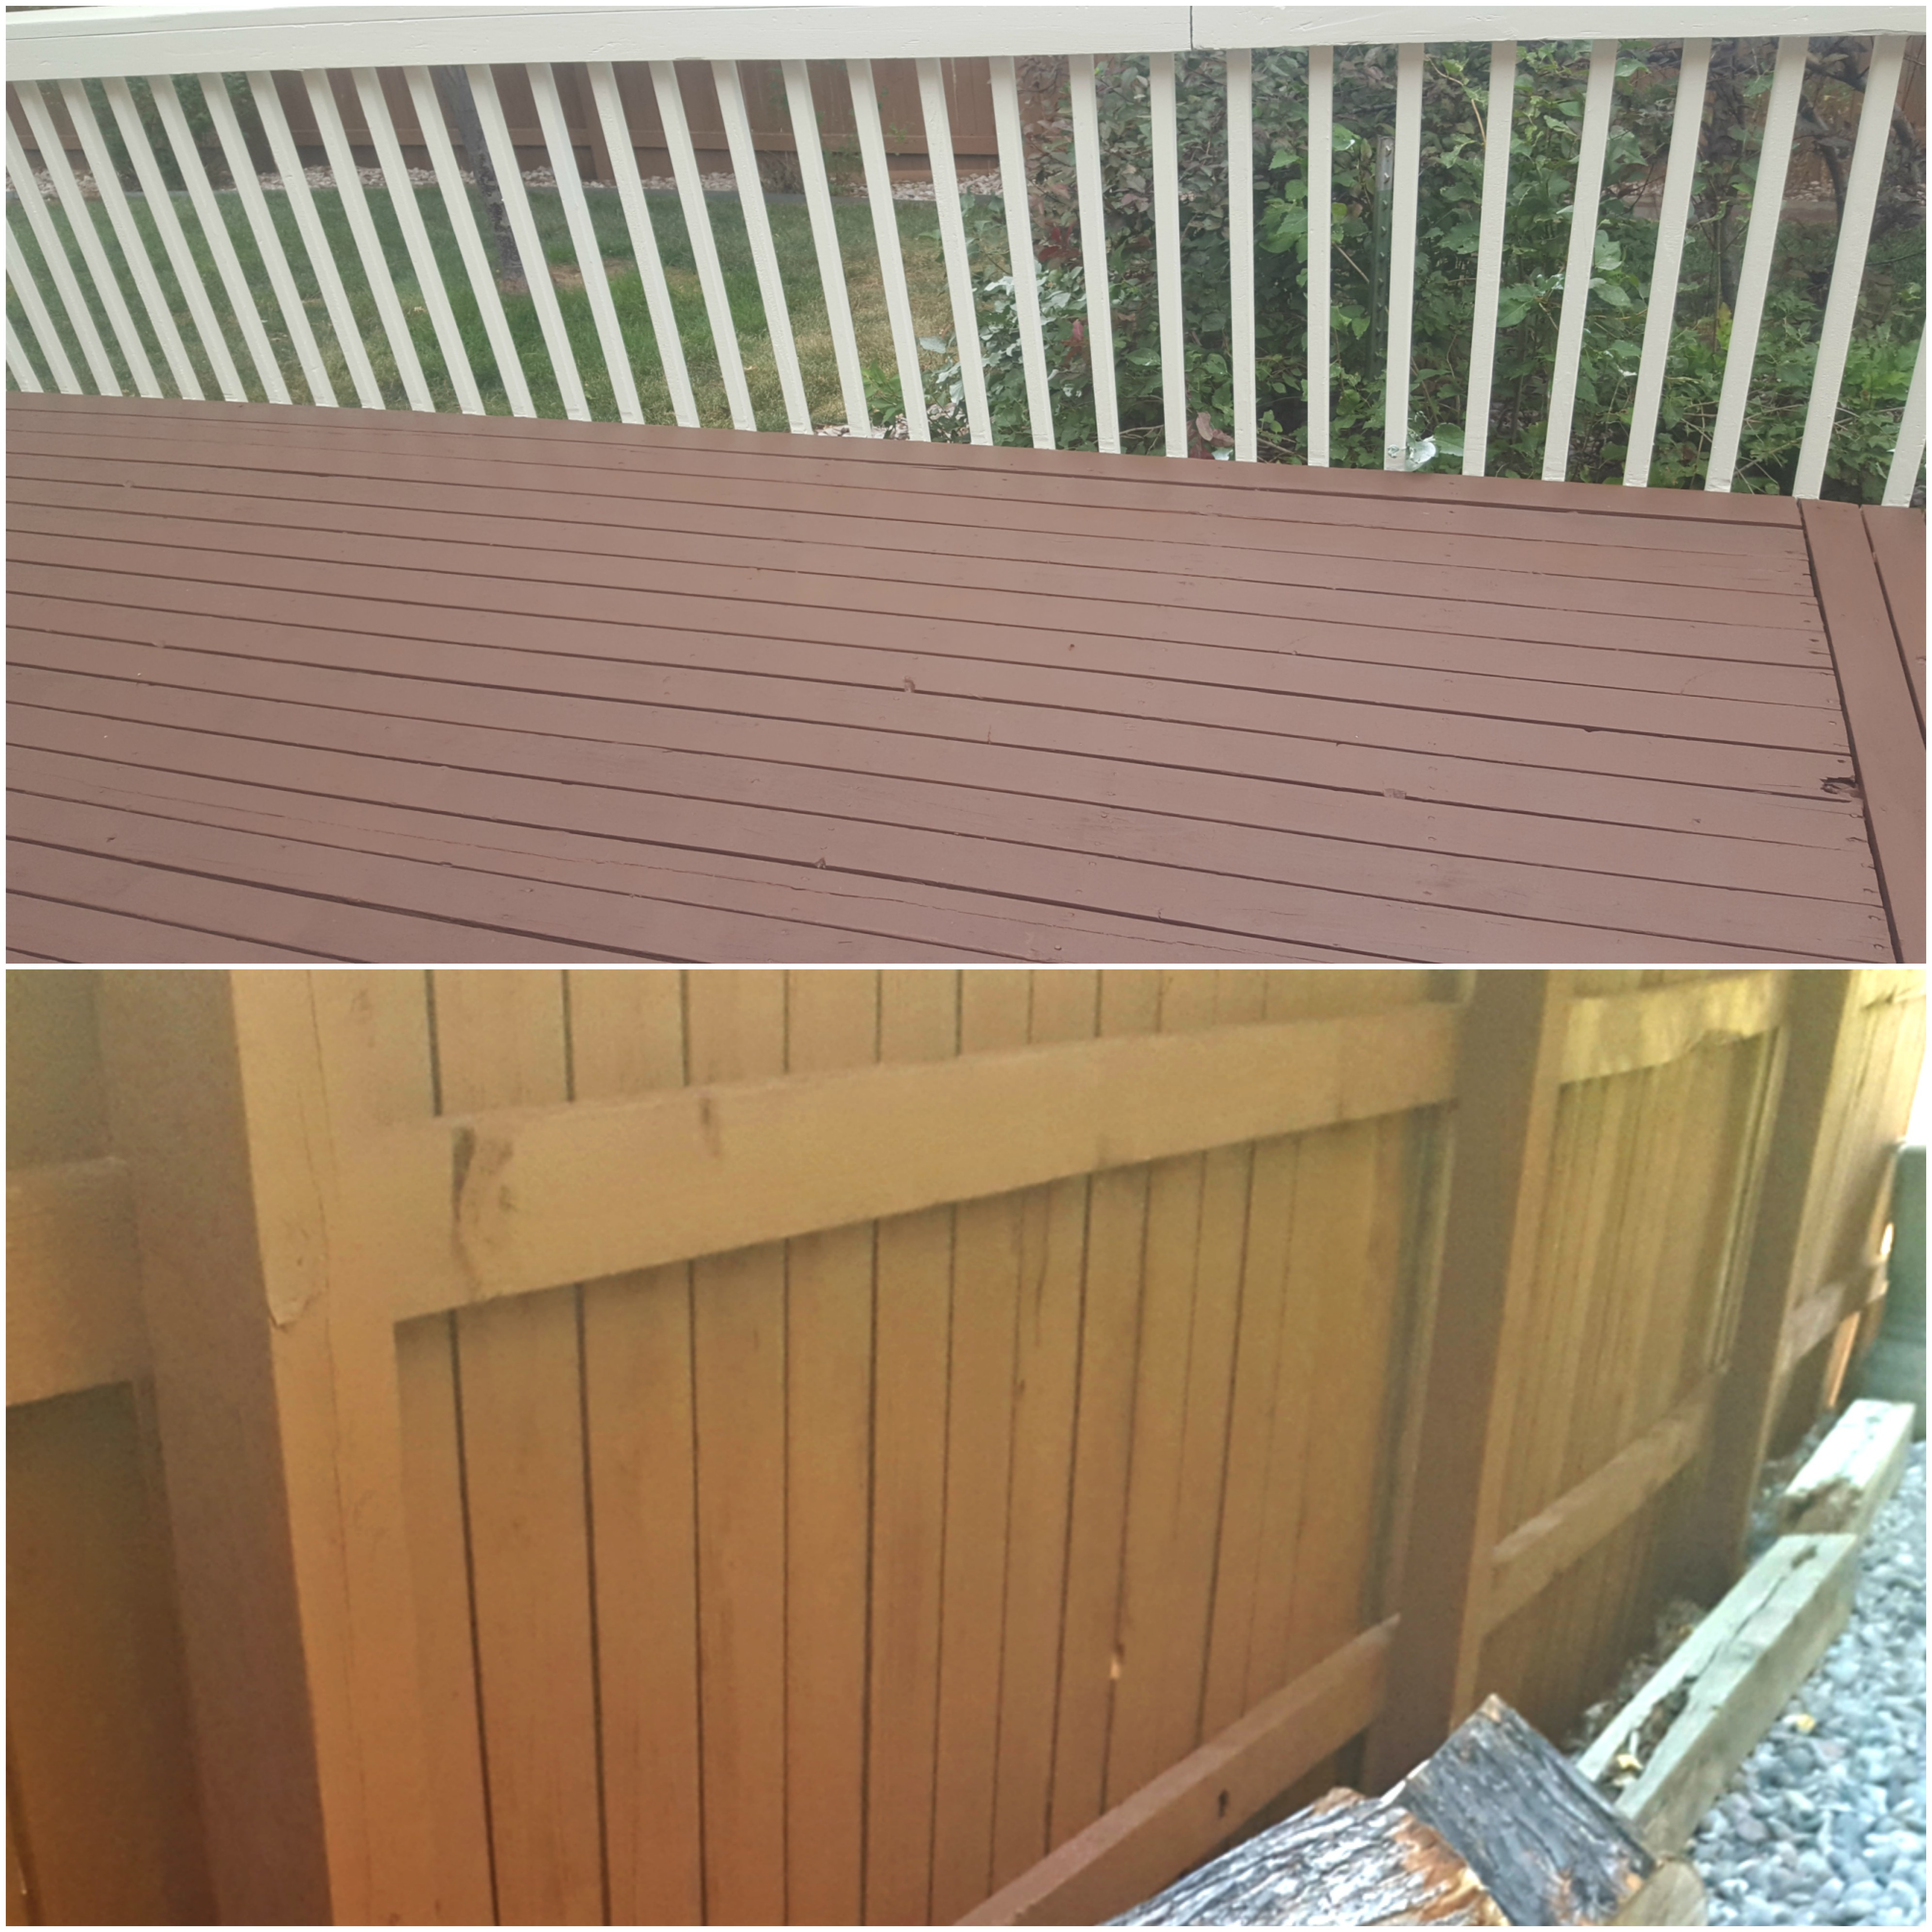 Fence and Deck Staining